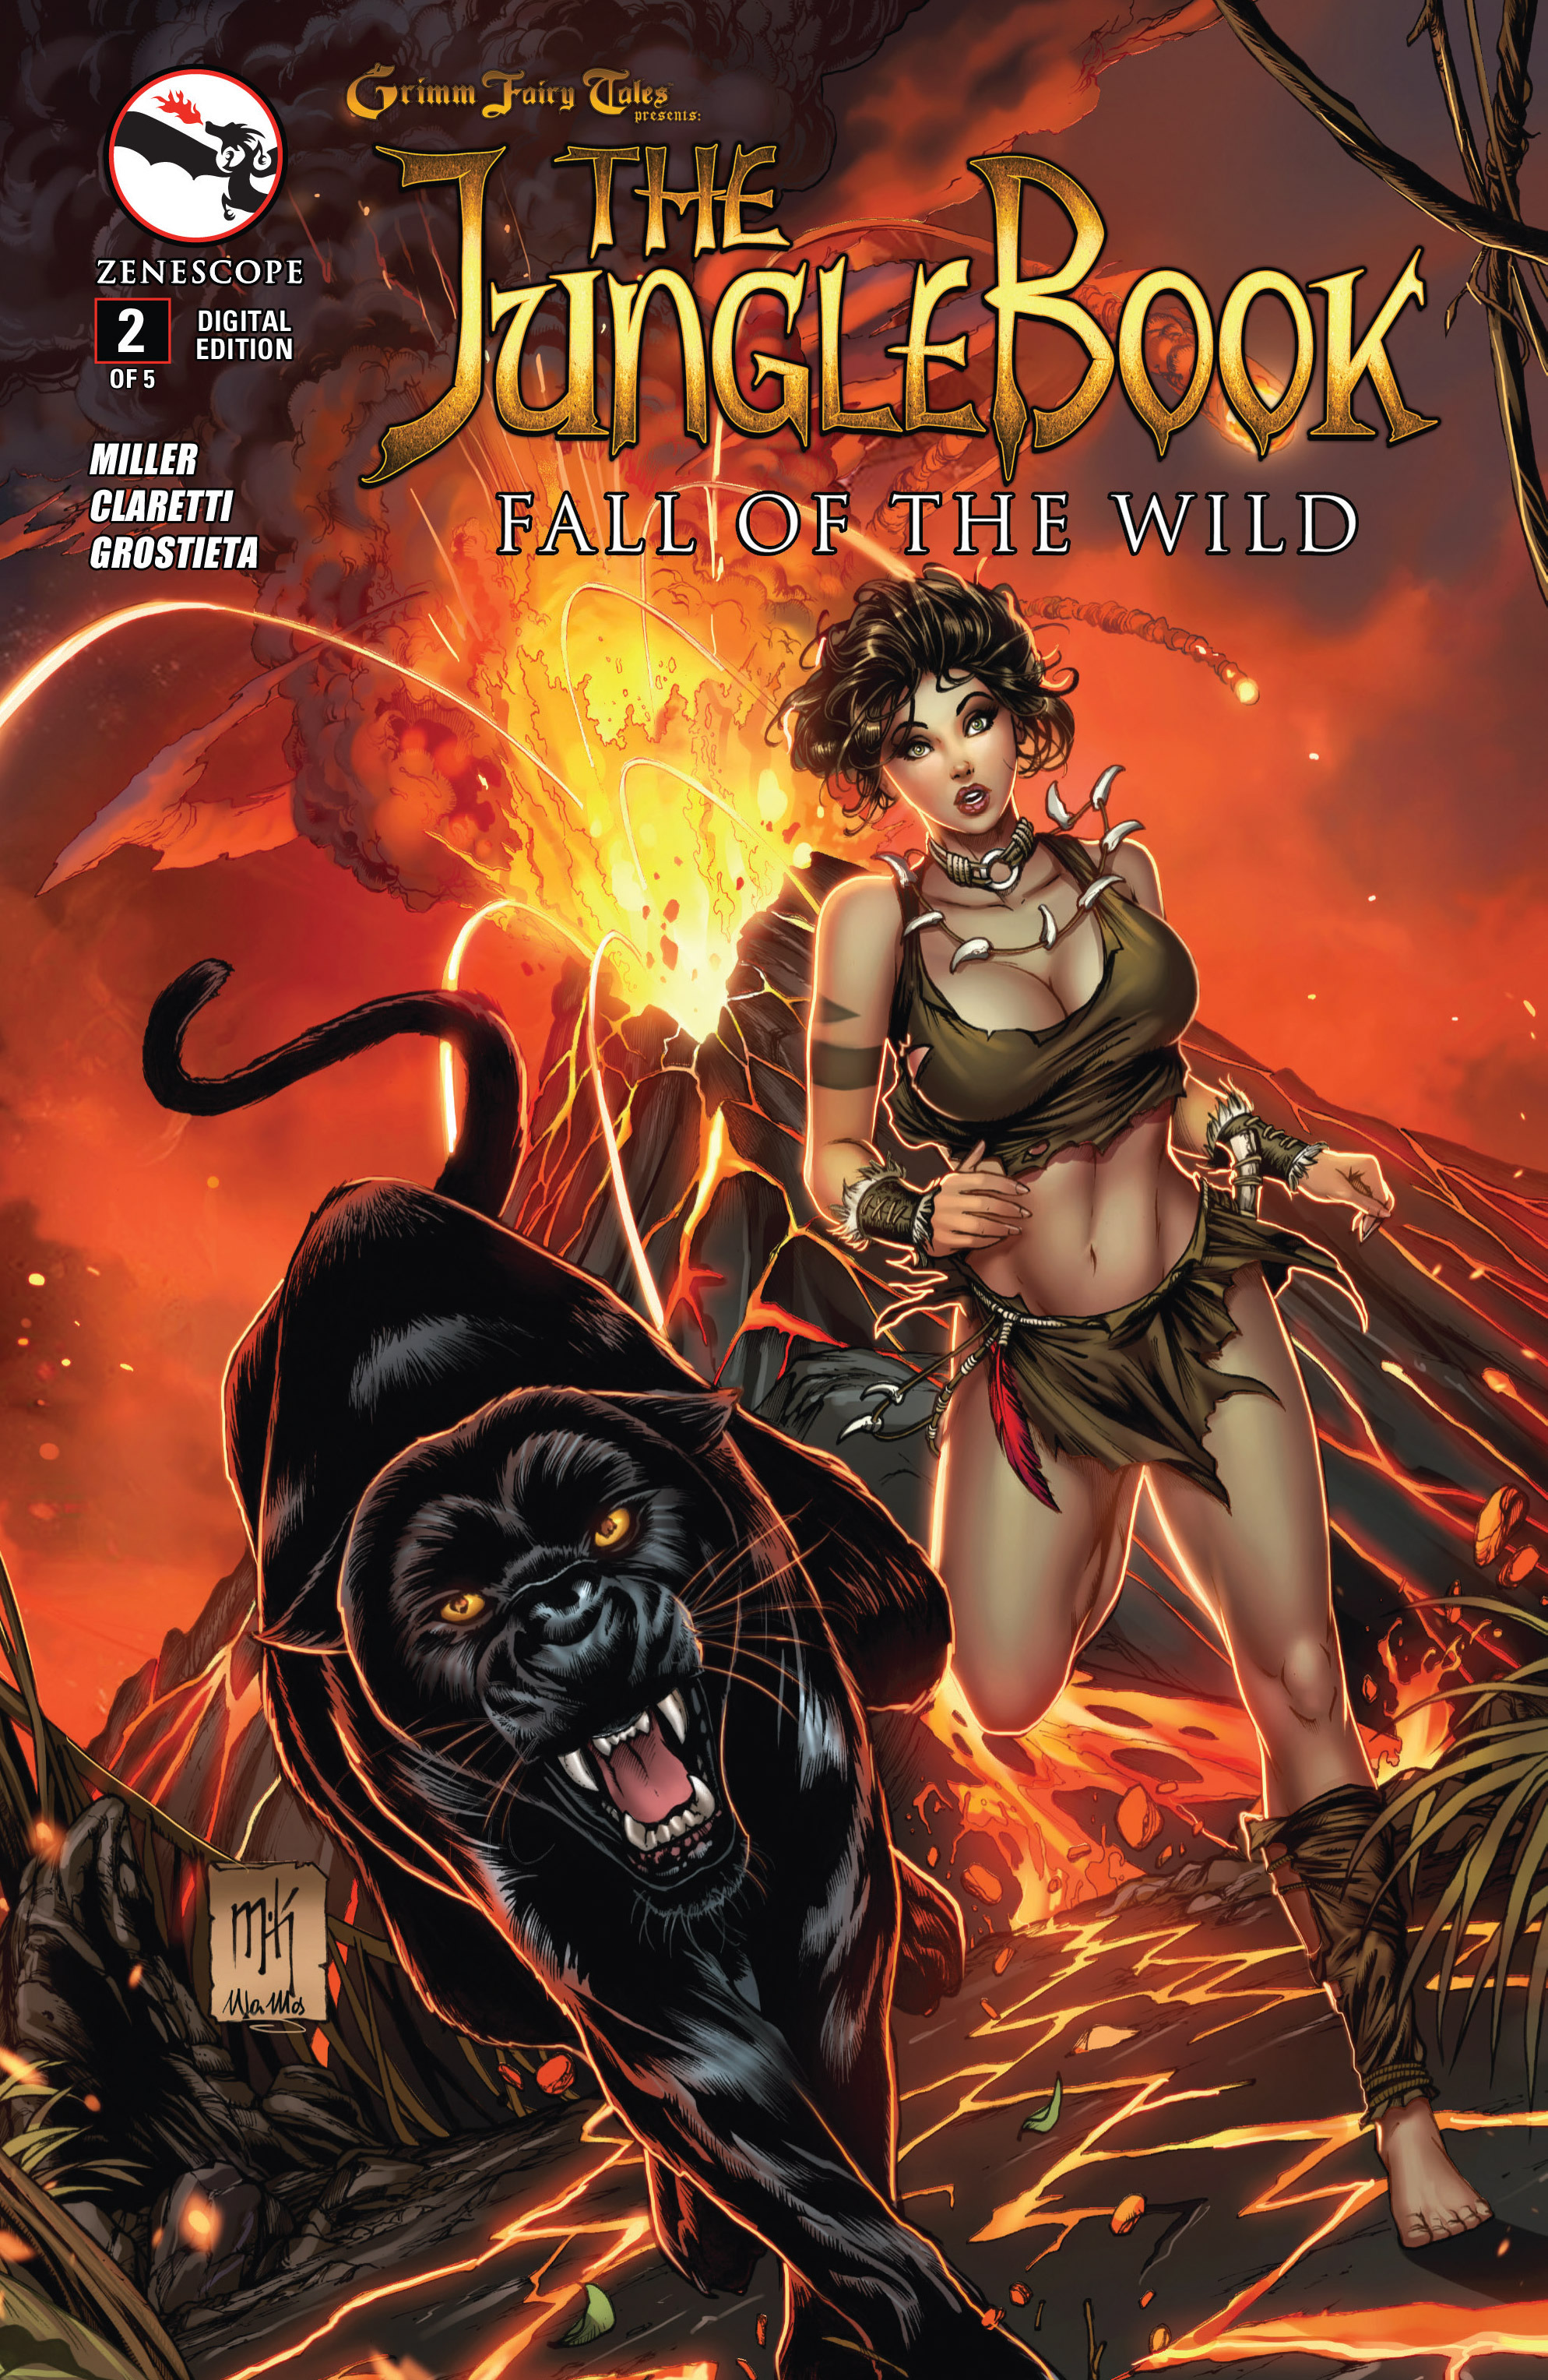 Grimm Fairy Tales presents The Jungle Book: Fall of the Wild 2 Page 1